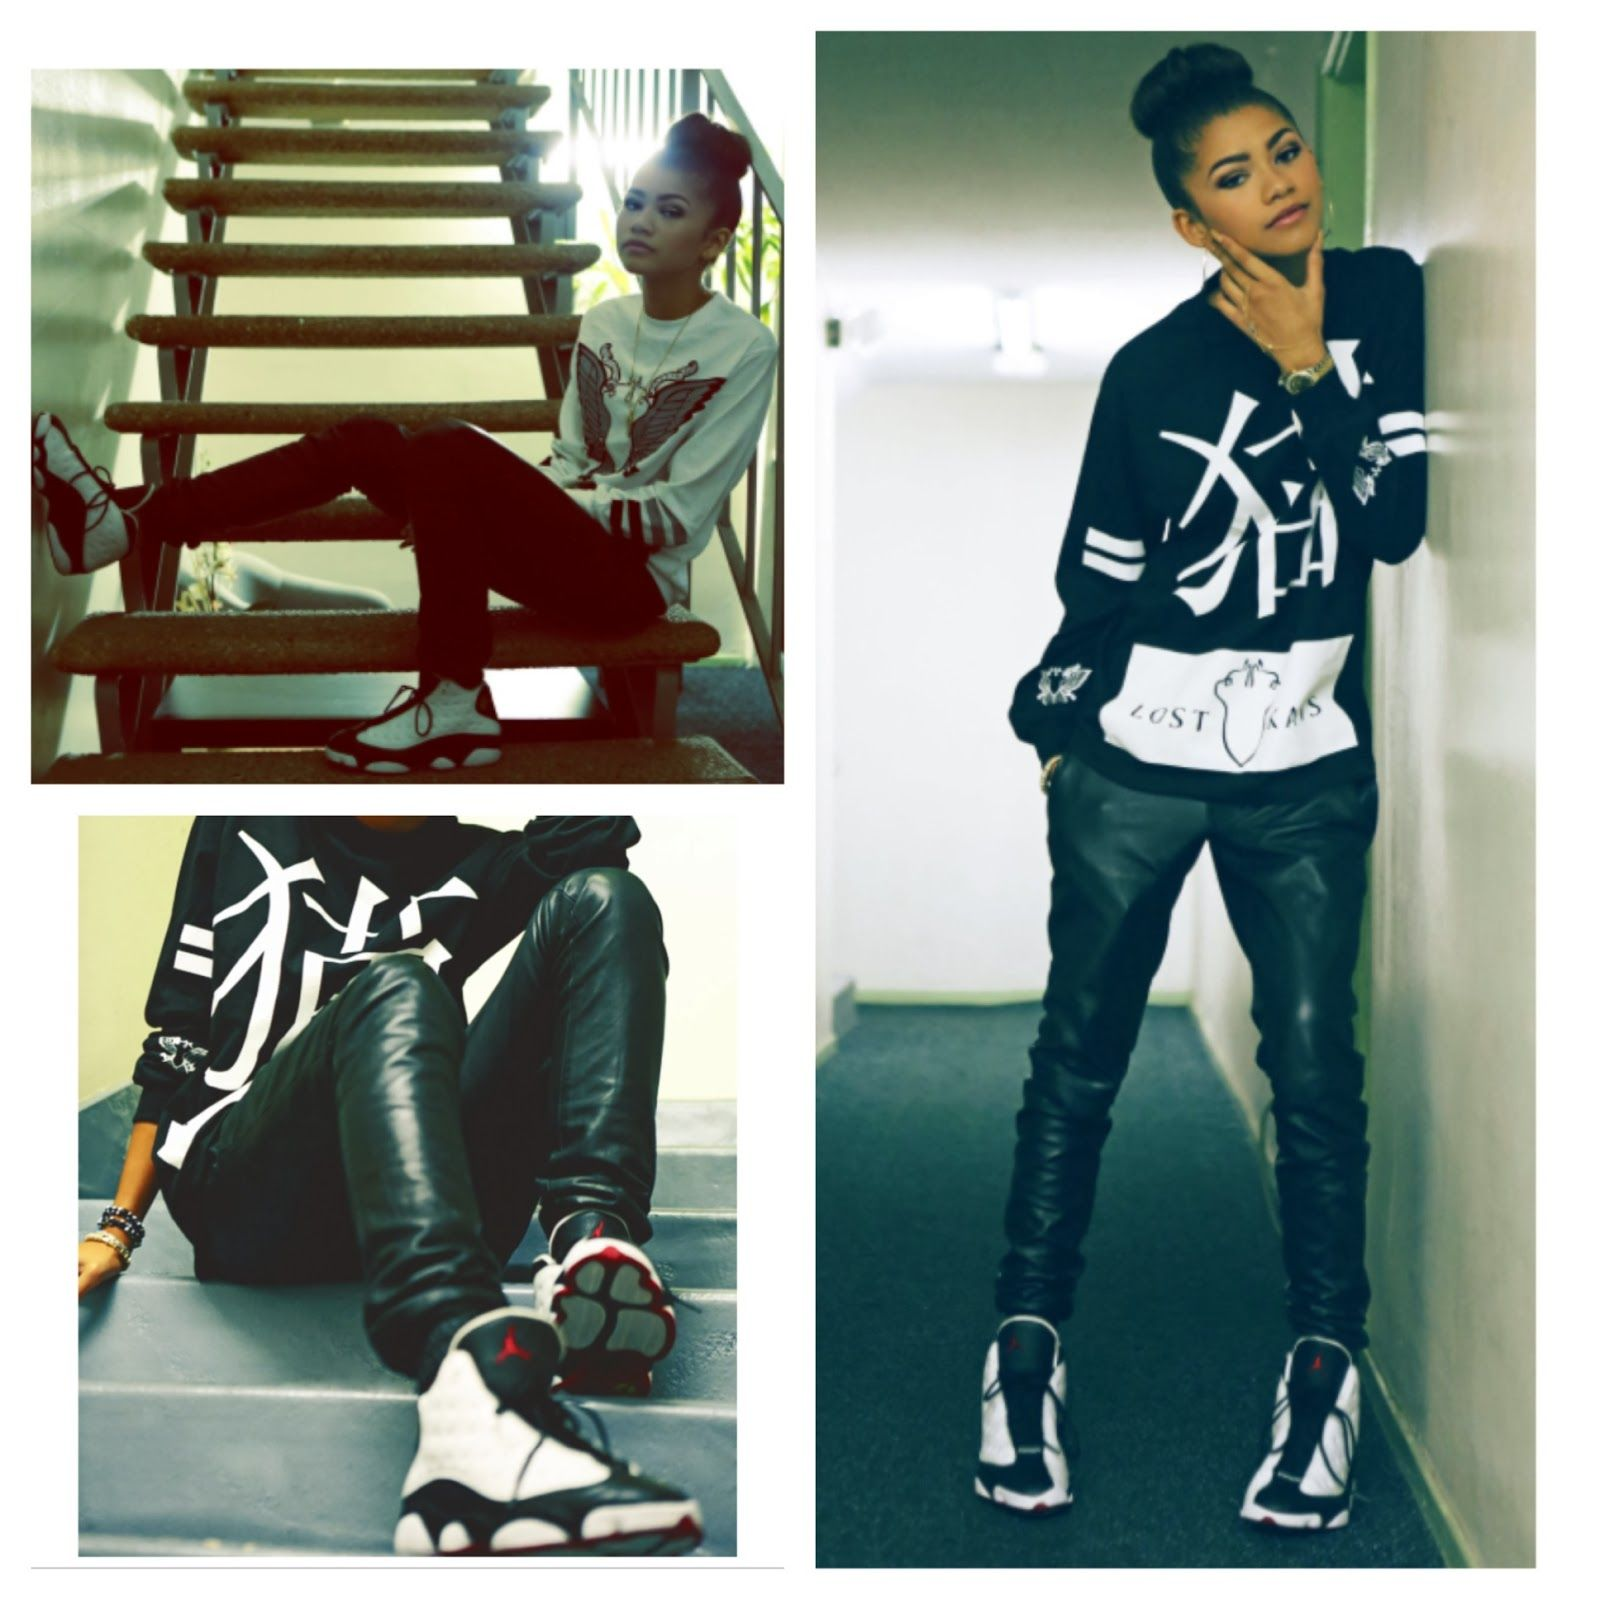 zendaya tomboy | dareyna swann Monday, November 11, 2013